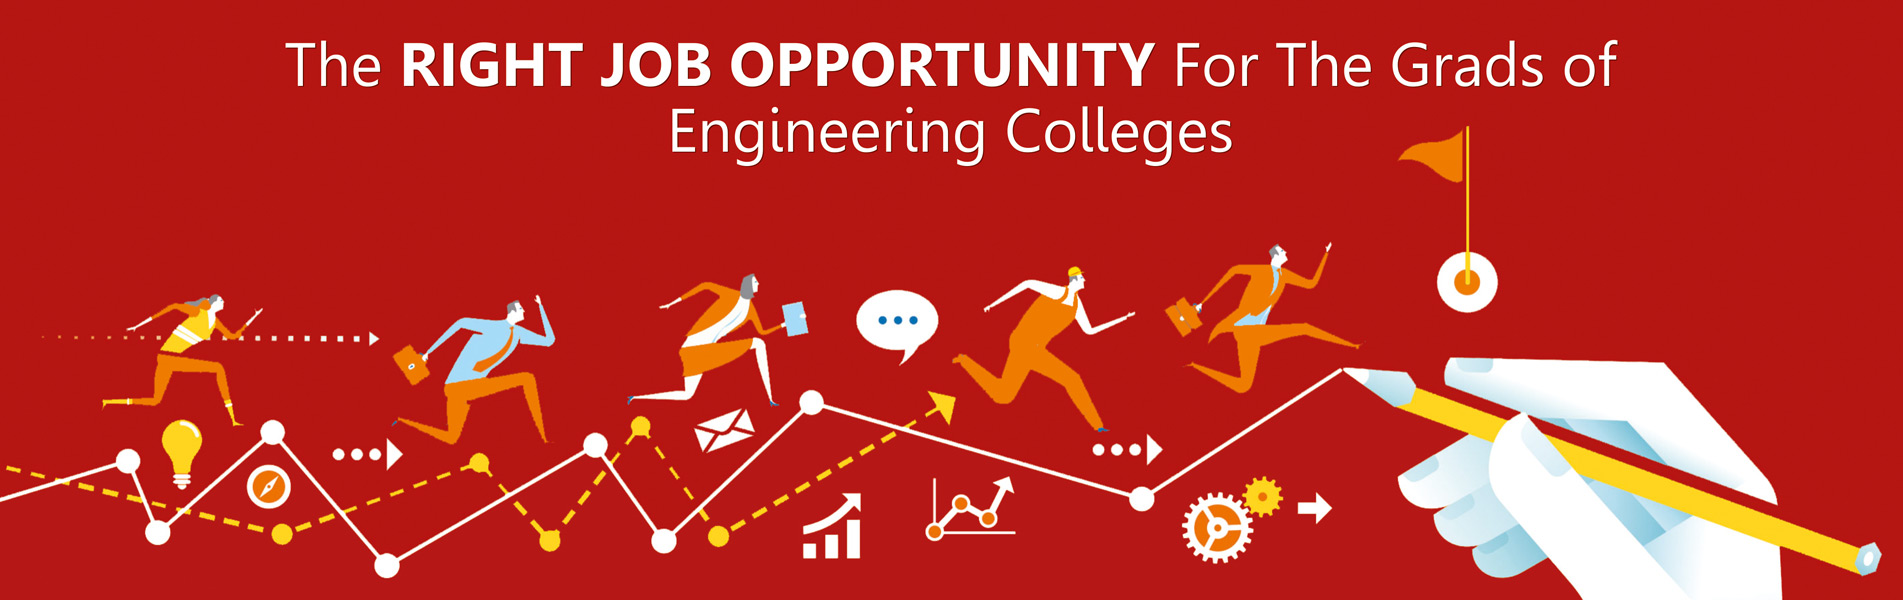 The-Right-Job-Opportunity-for-the-Grads-of-Engineering-Colleges